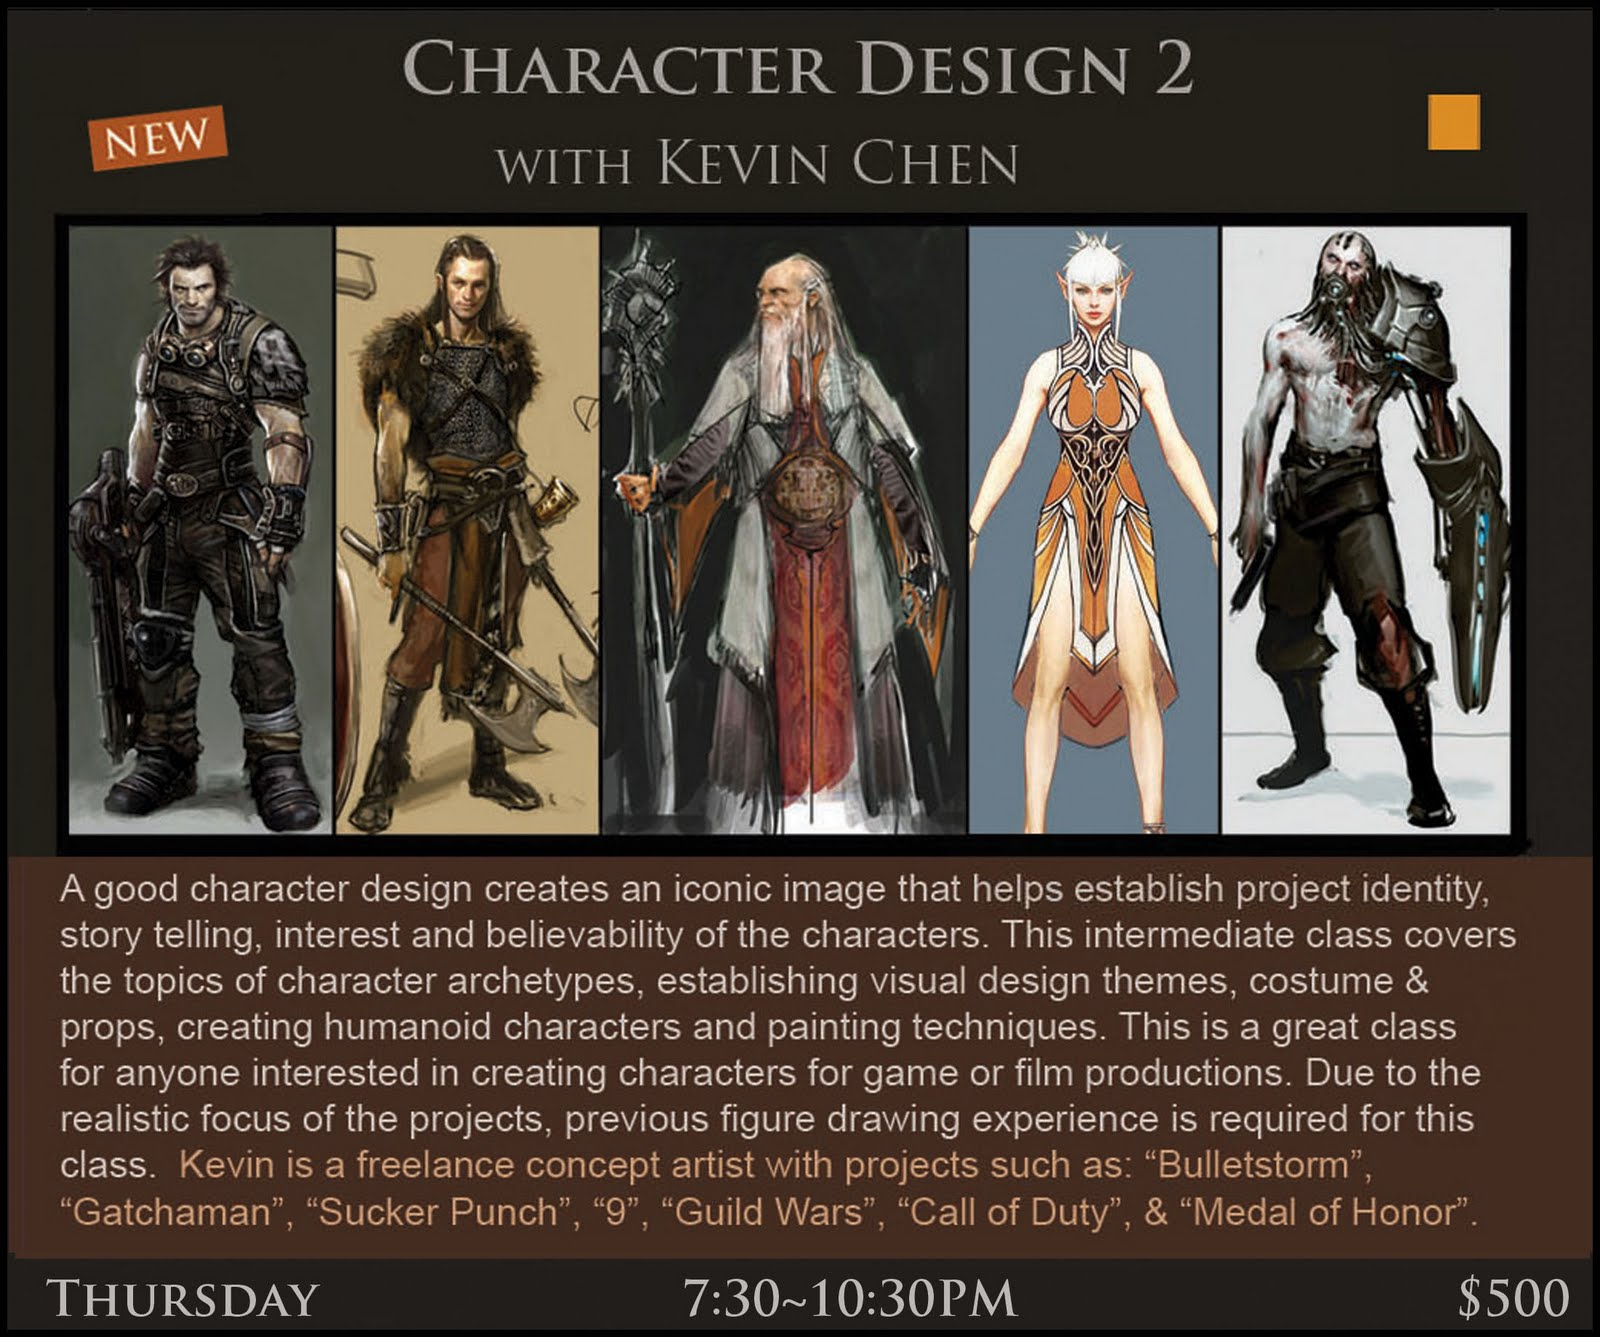 The Art Of Character Design Volume 2 With David Colman : Concept design academy may